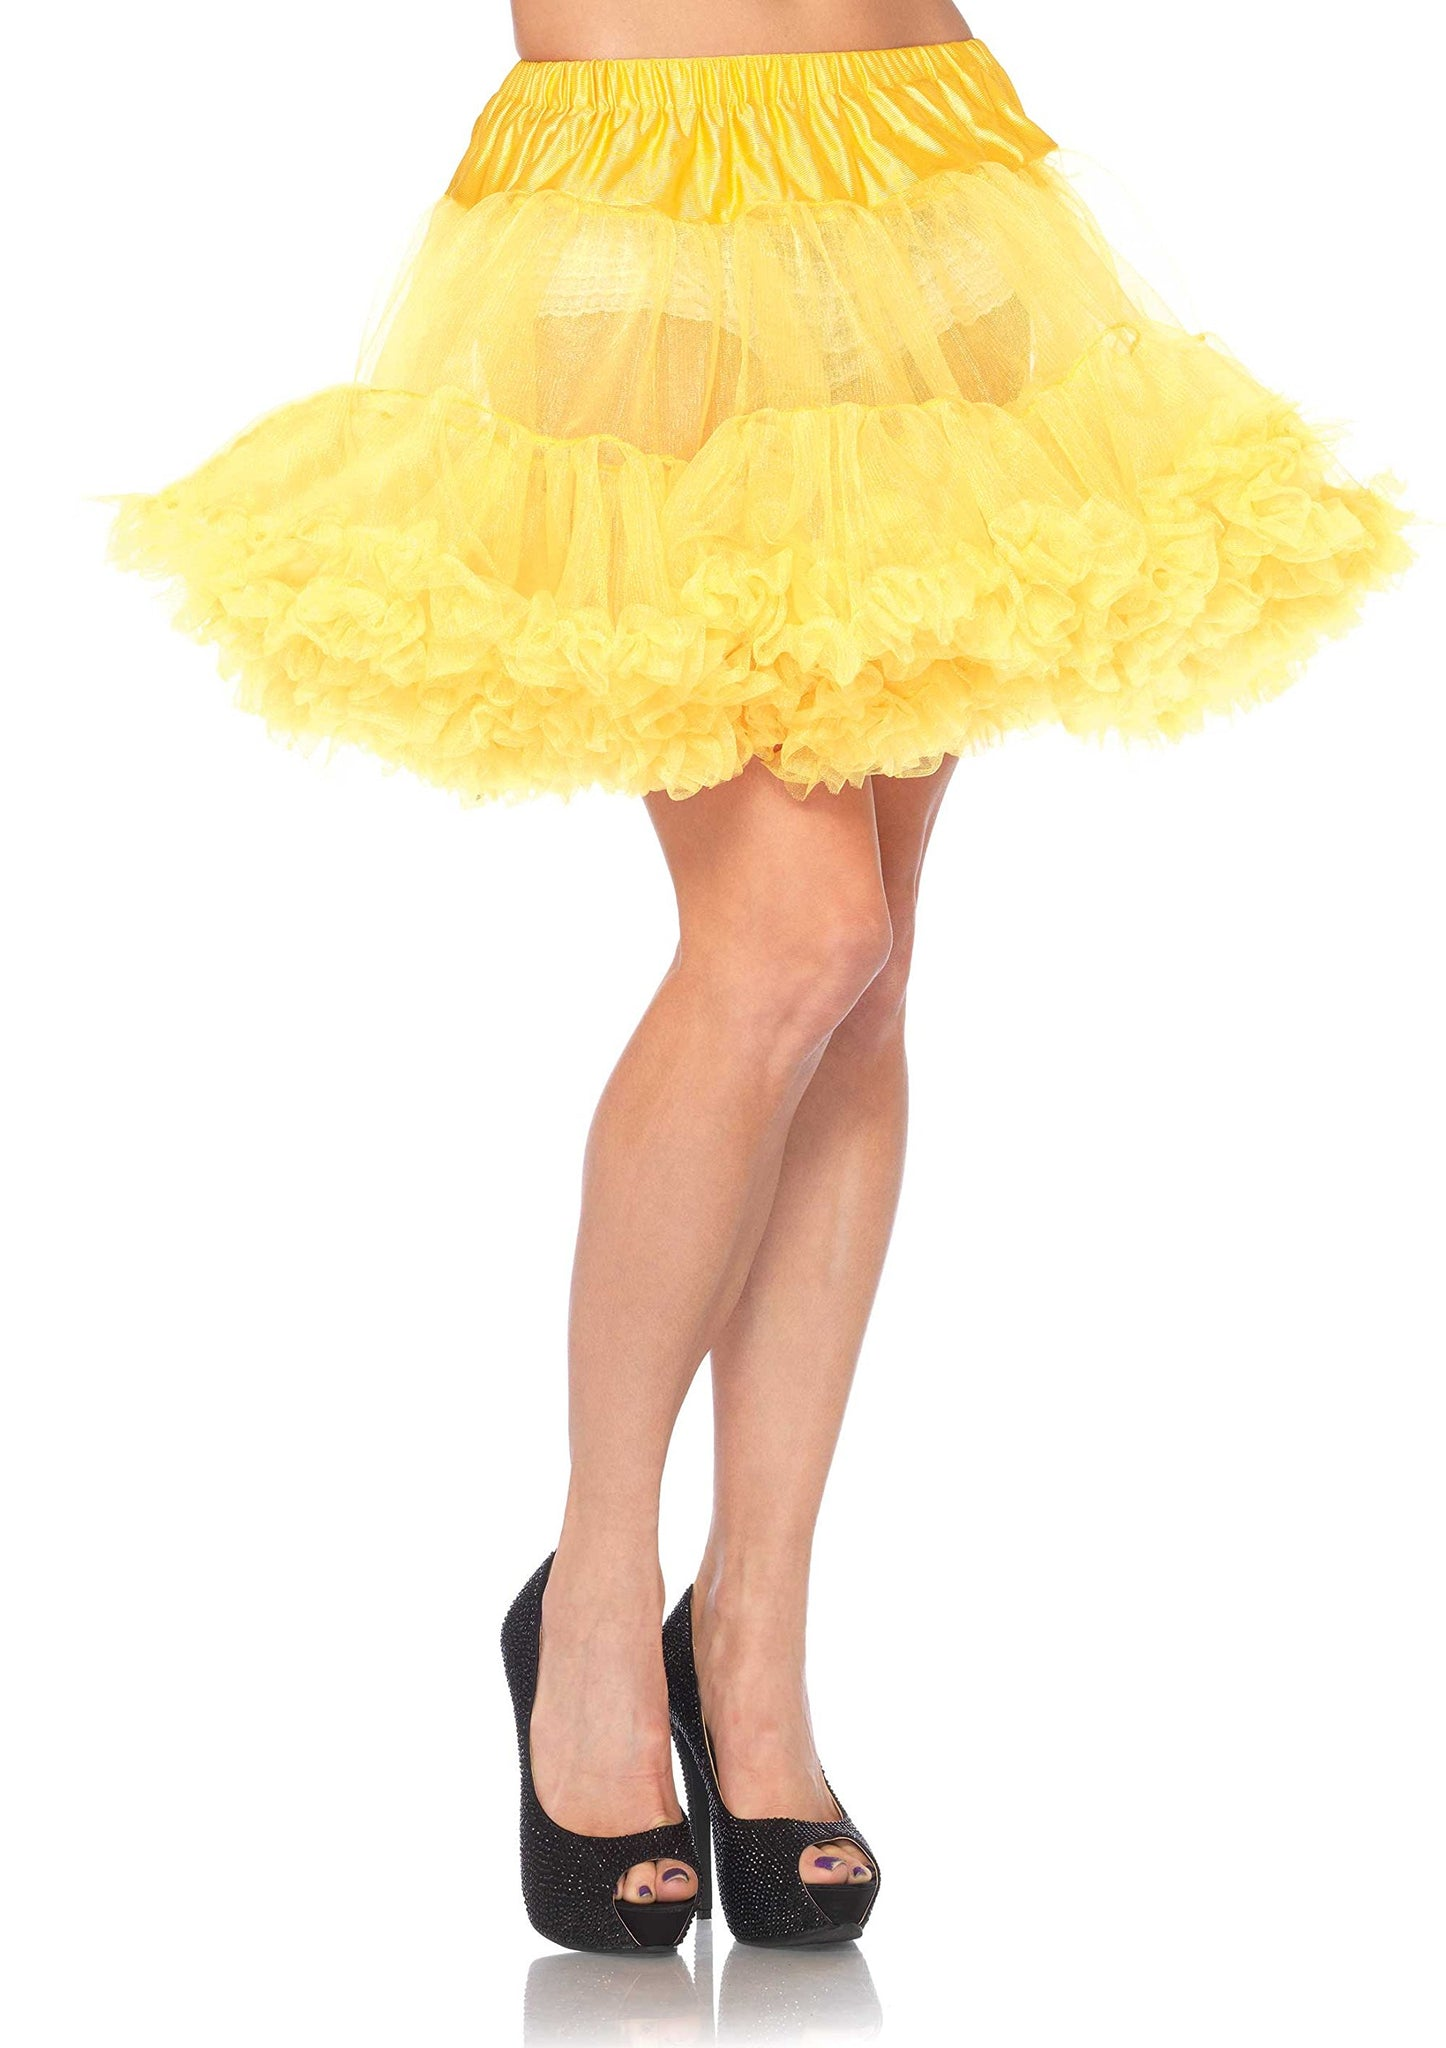 Women's Petticoat, Yellow, One Size Skirt